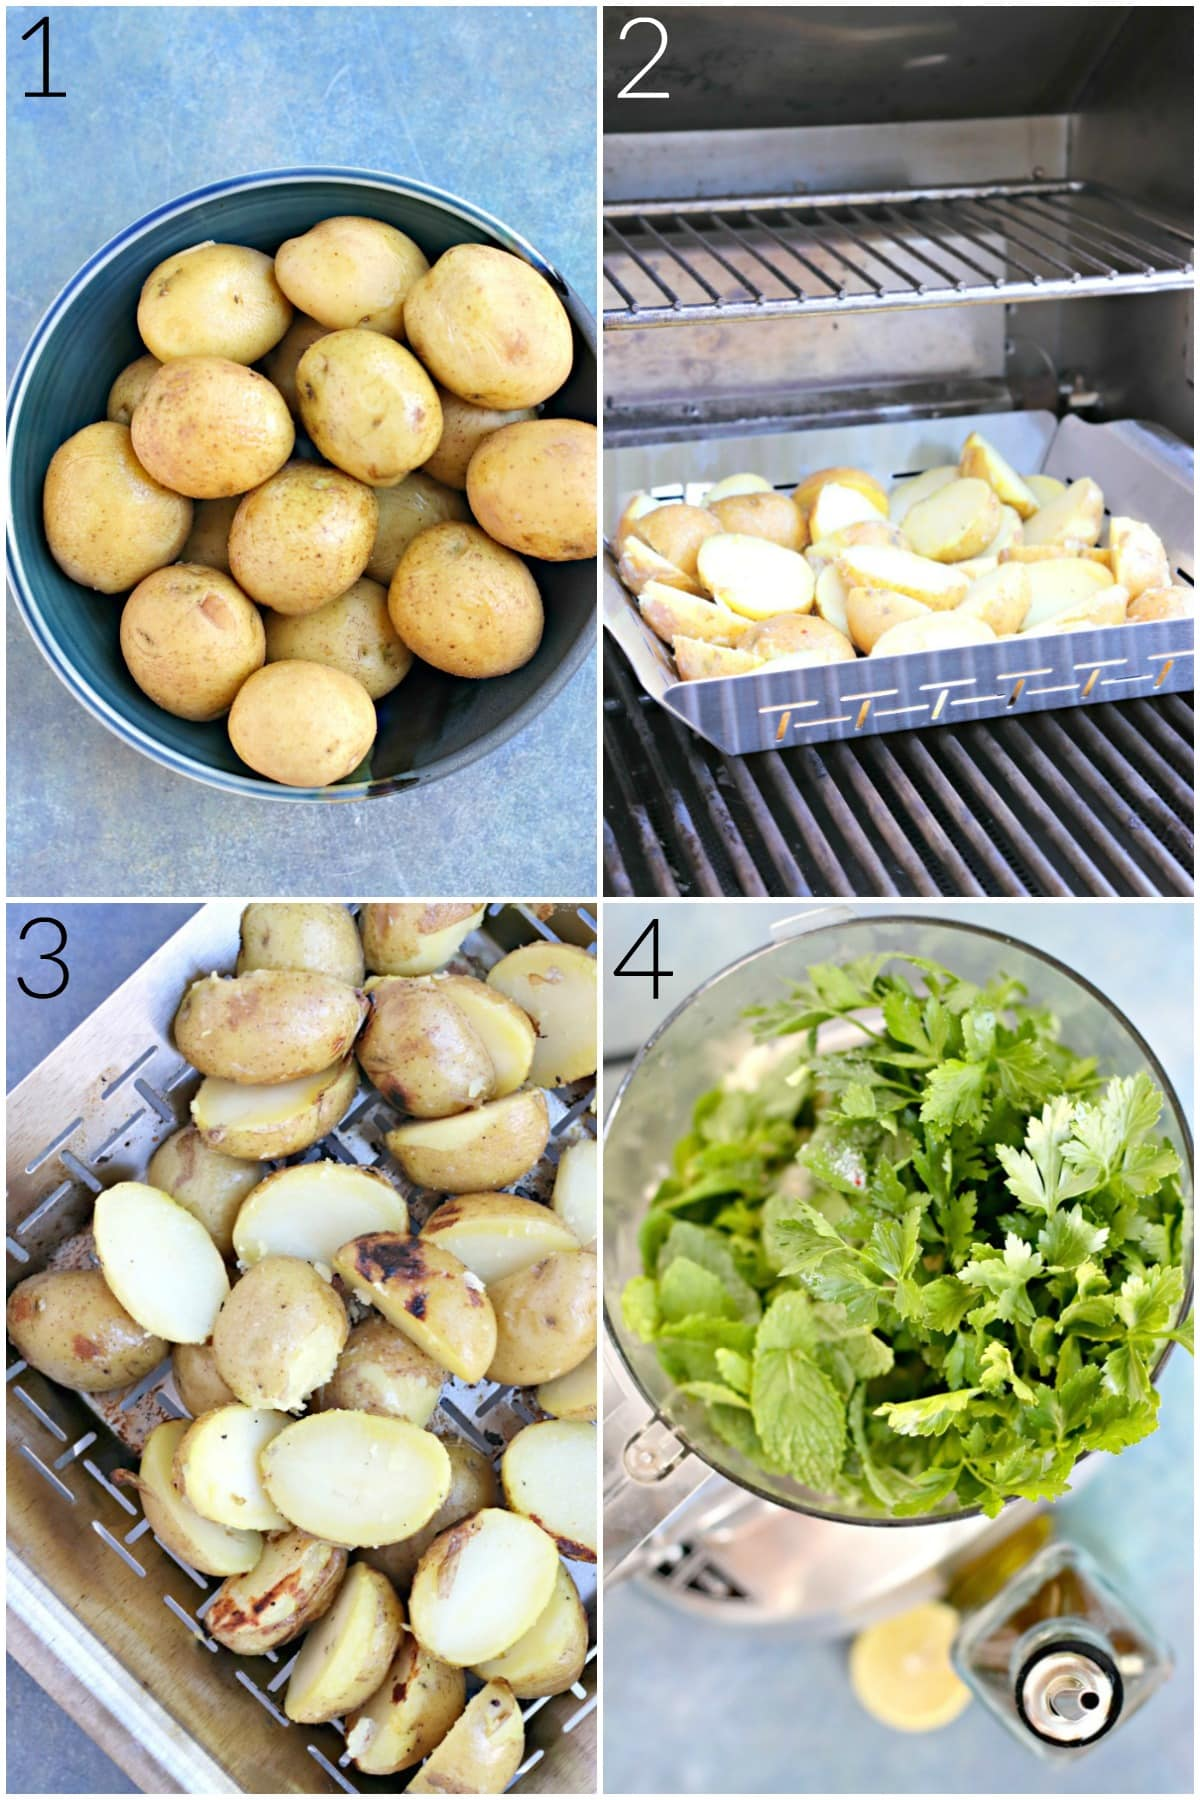 Process shots showing how to prepare the potatoes and the sauce